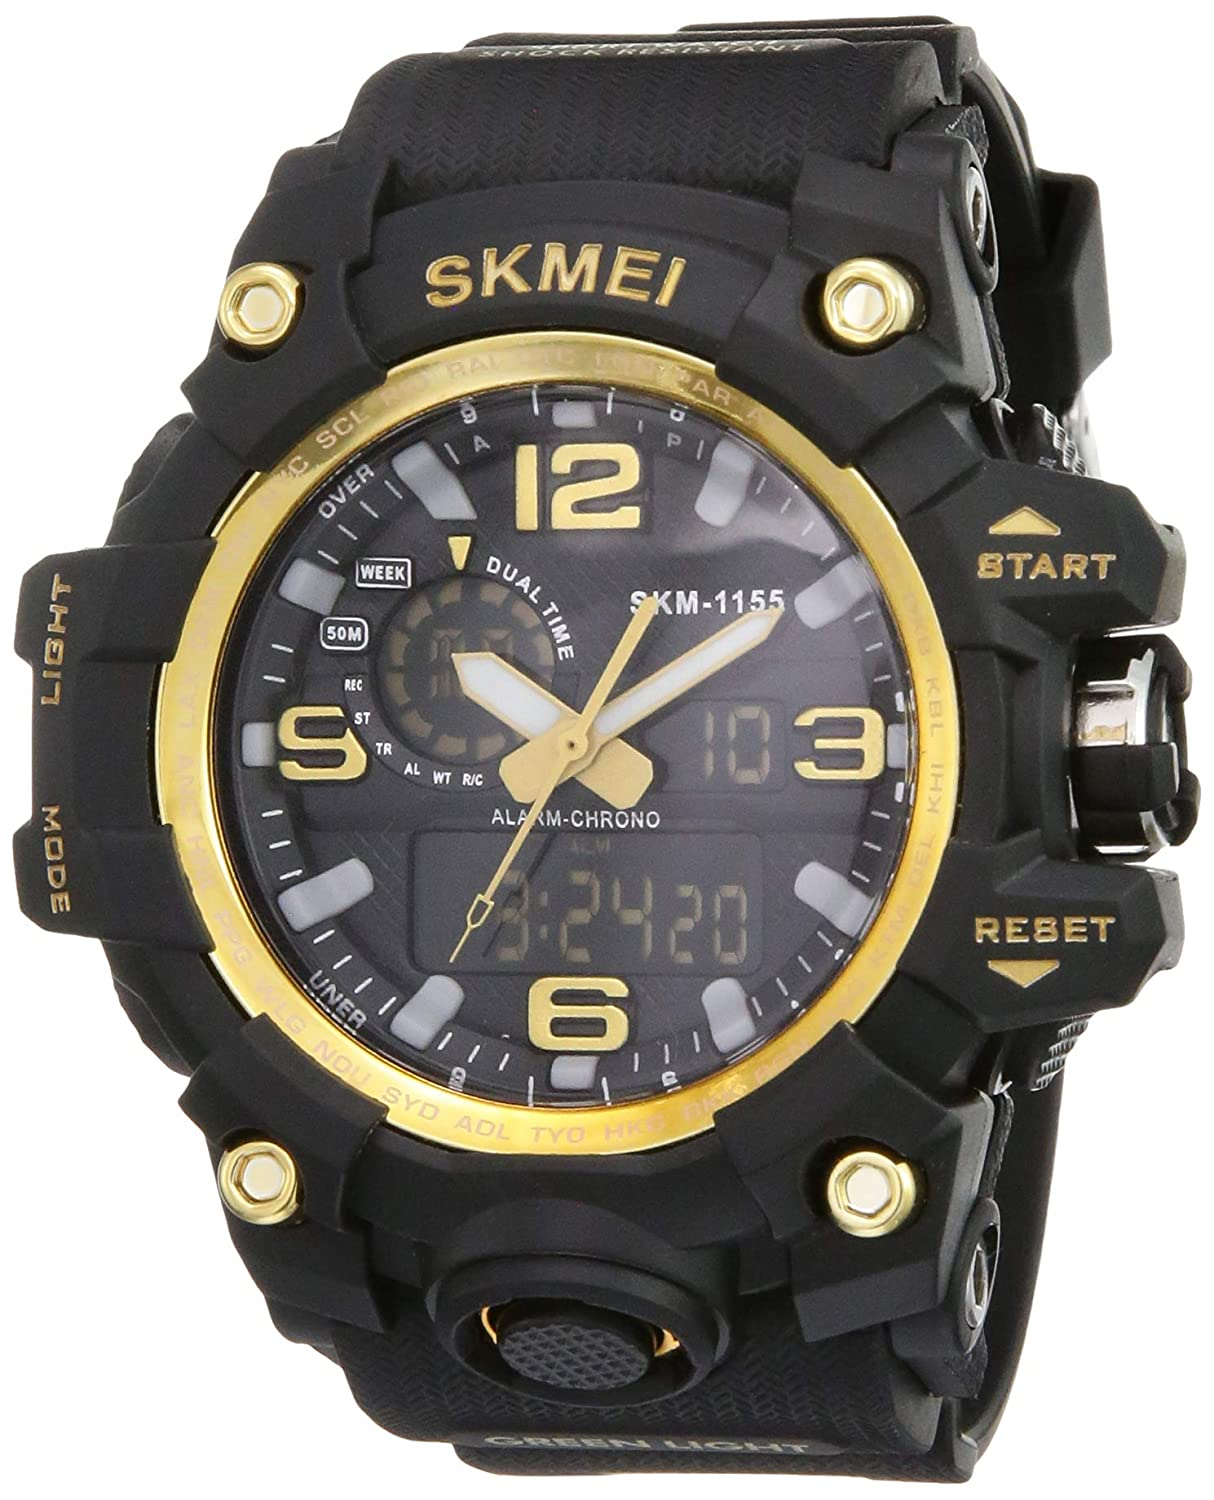 Buy Skmei Analogue Digital Men S Watch Black Dial At Amazon In